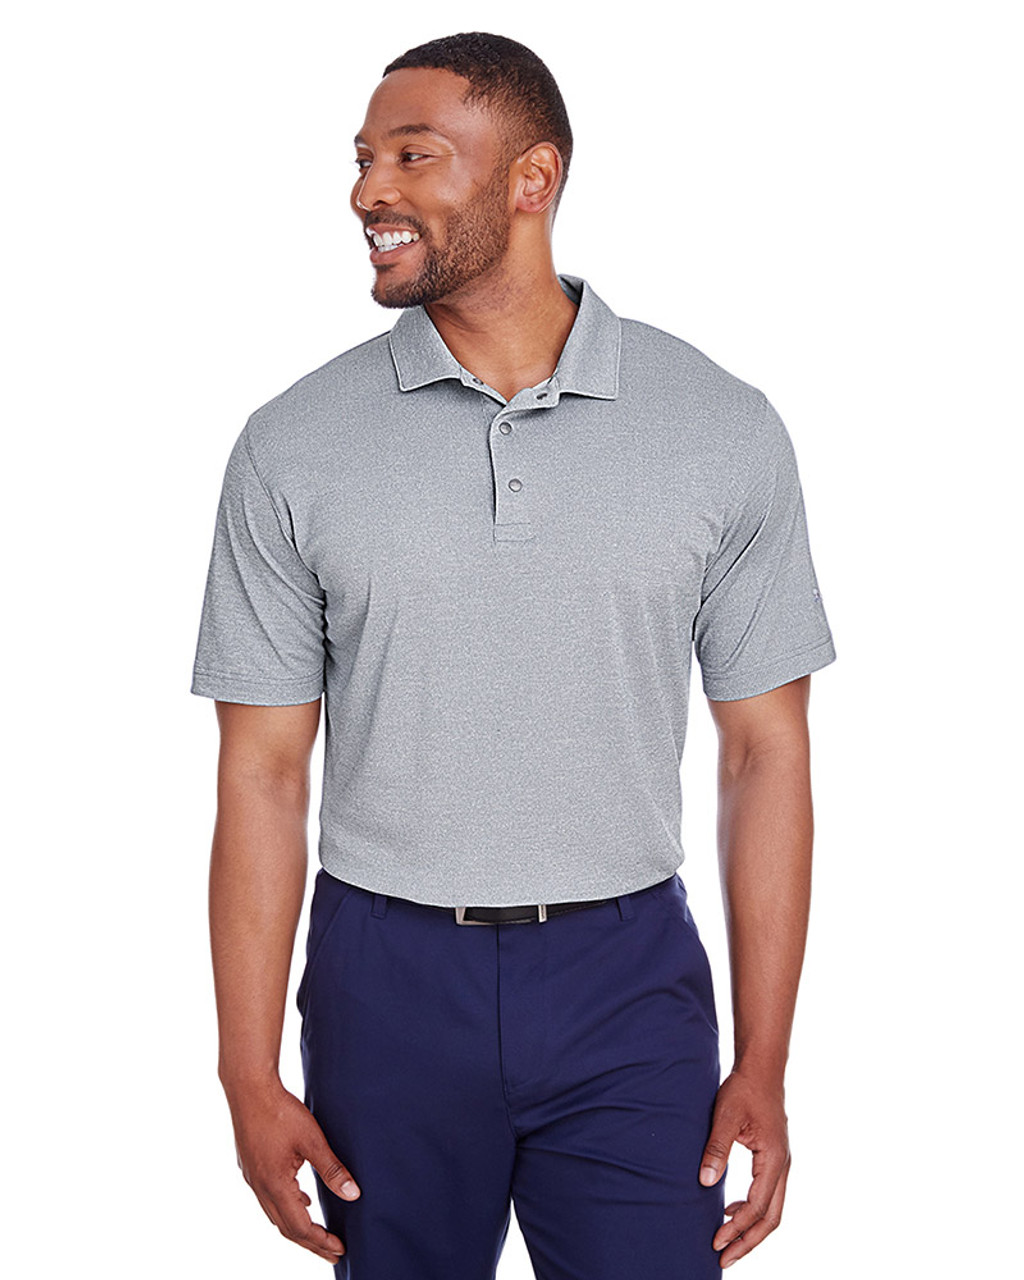 Peacoat Heather - 597220 Puma Golf Men's Grill-To-Green Polo | Blankclothing.ca